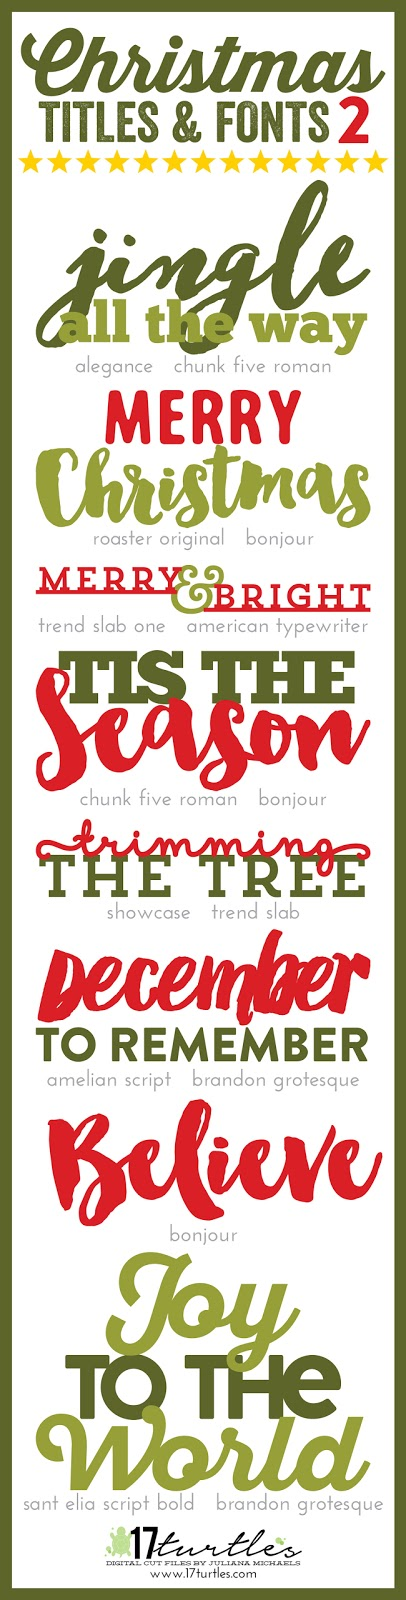 Christmas Titles and Fonts 2  by Juliana Michaels 17turtles.com